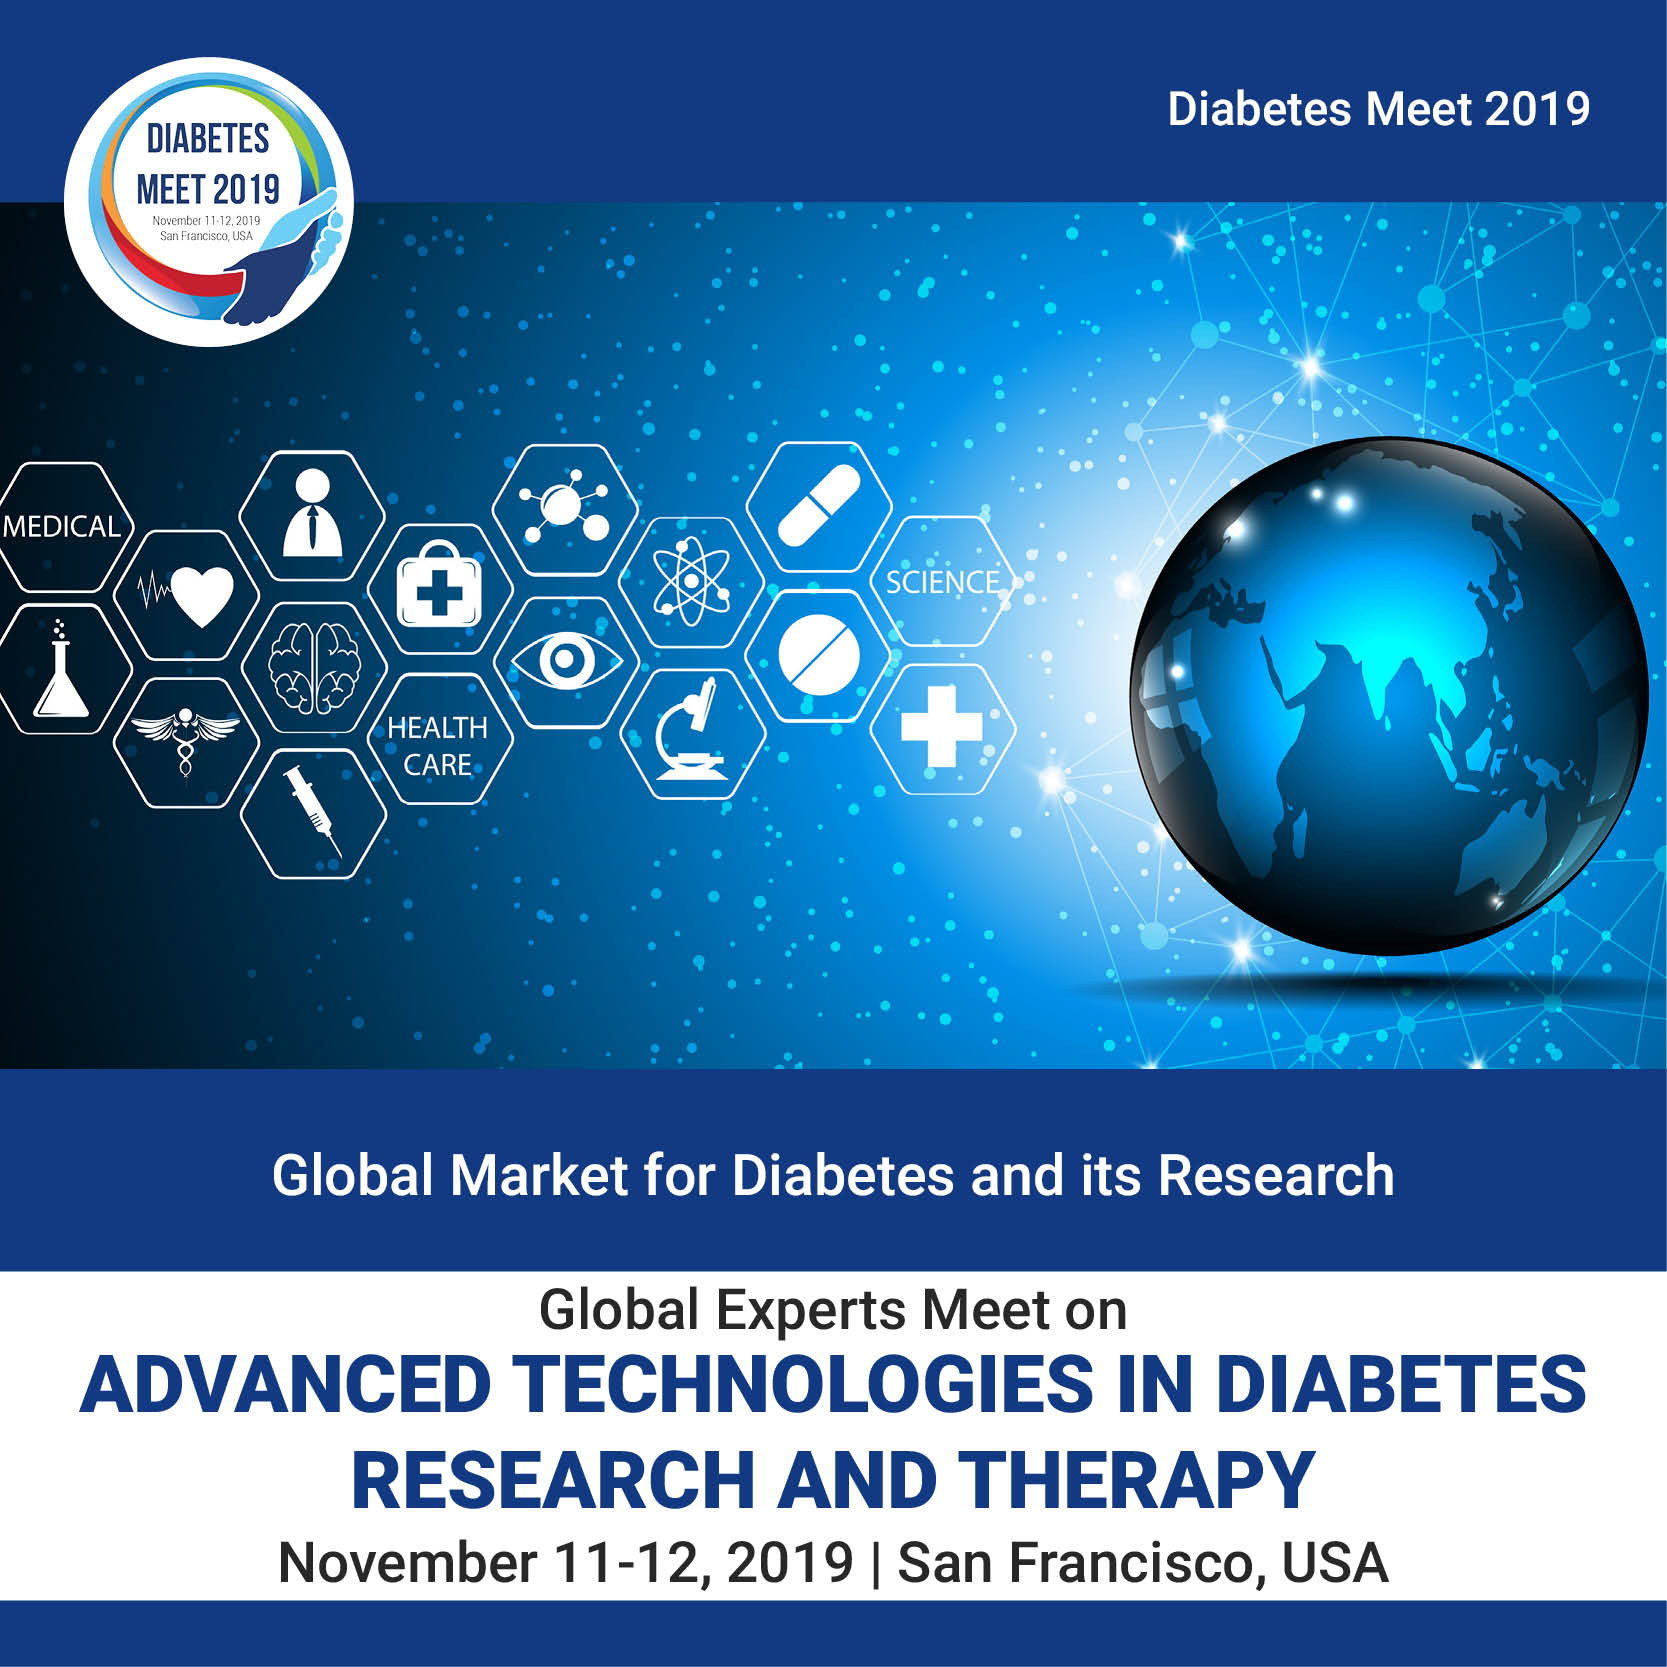 Global Market for Diabetes and its Research Photo